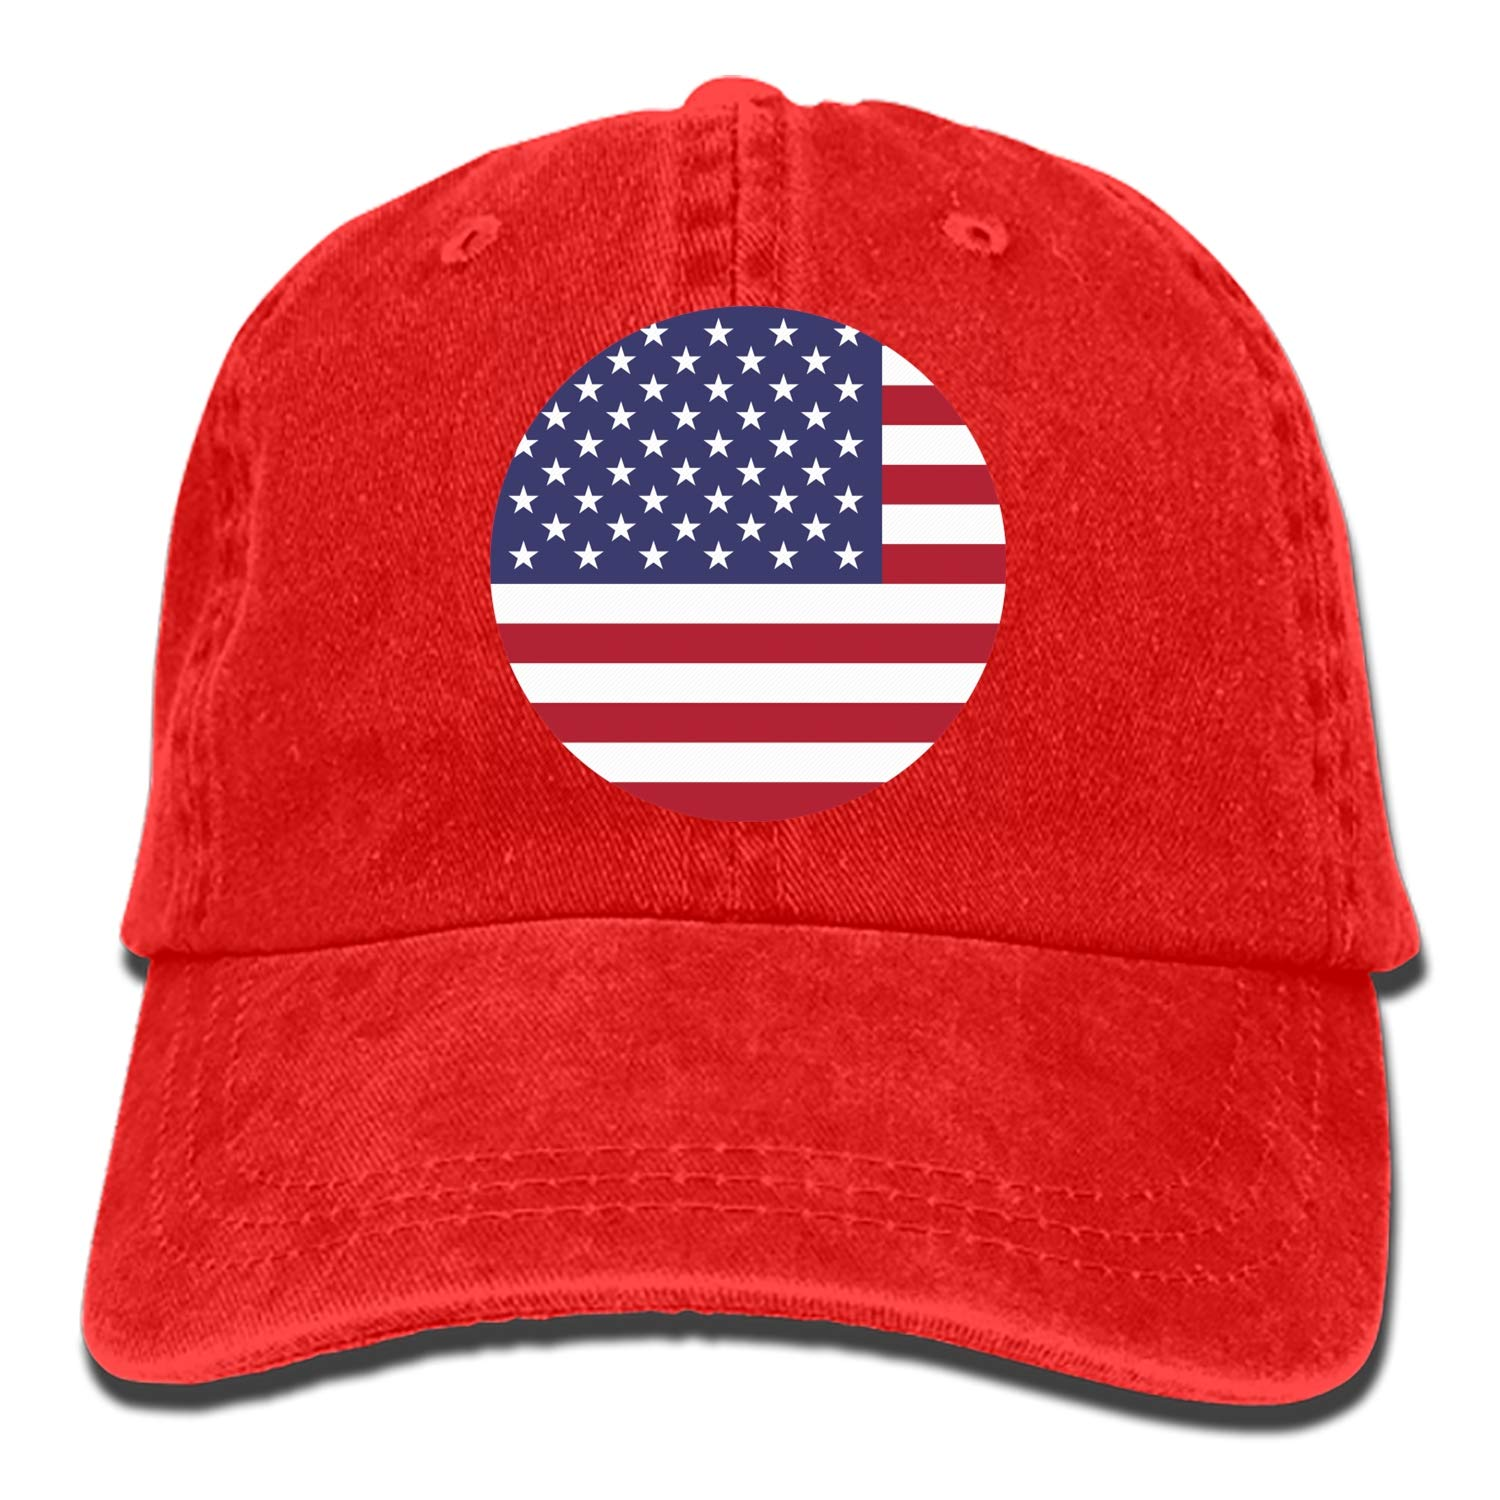 Custom USA Flag Classic Cotton Adjustable Baseball Cap Dad Trucker Snapback Hat